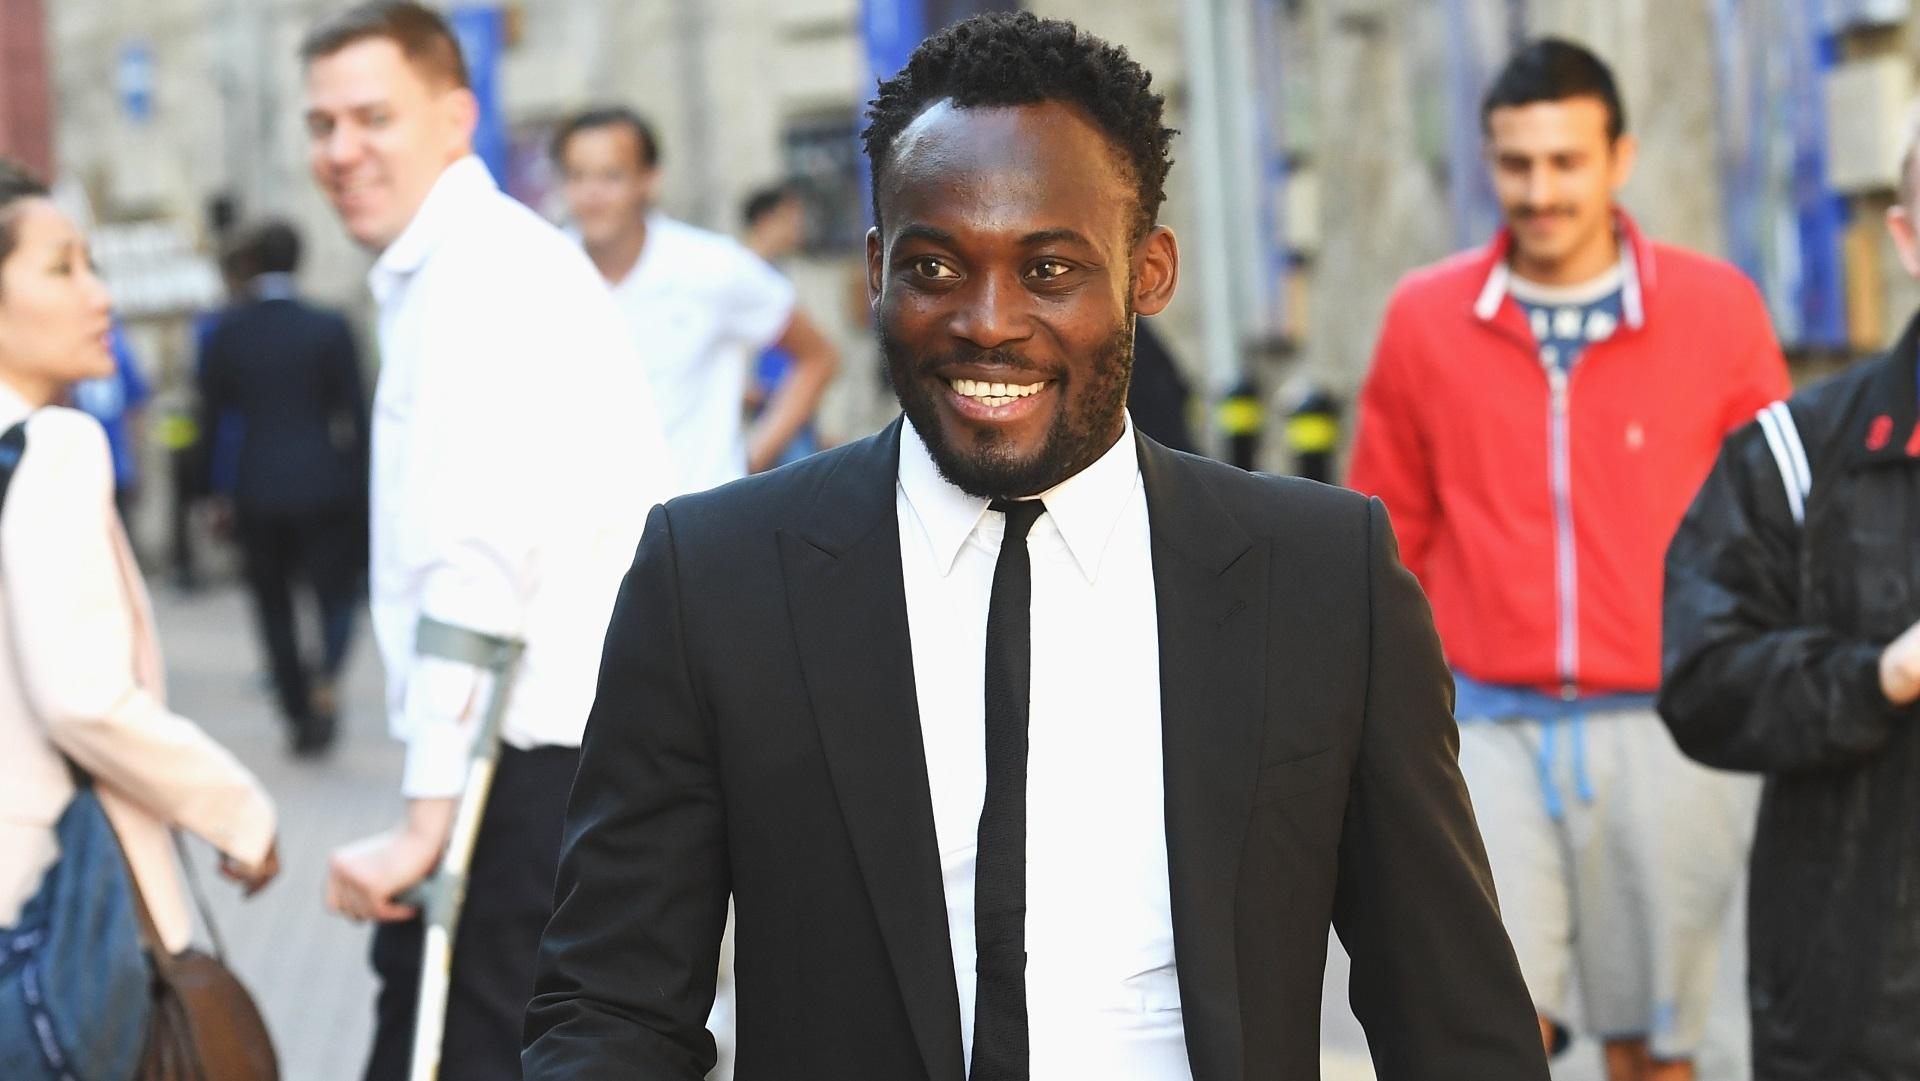 Tuchel vs Lampard: Michael Essien names right manager for Chelsea